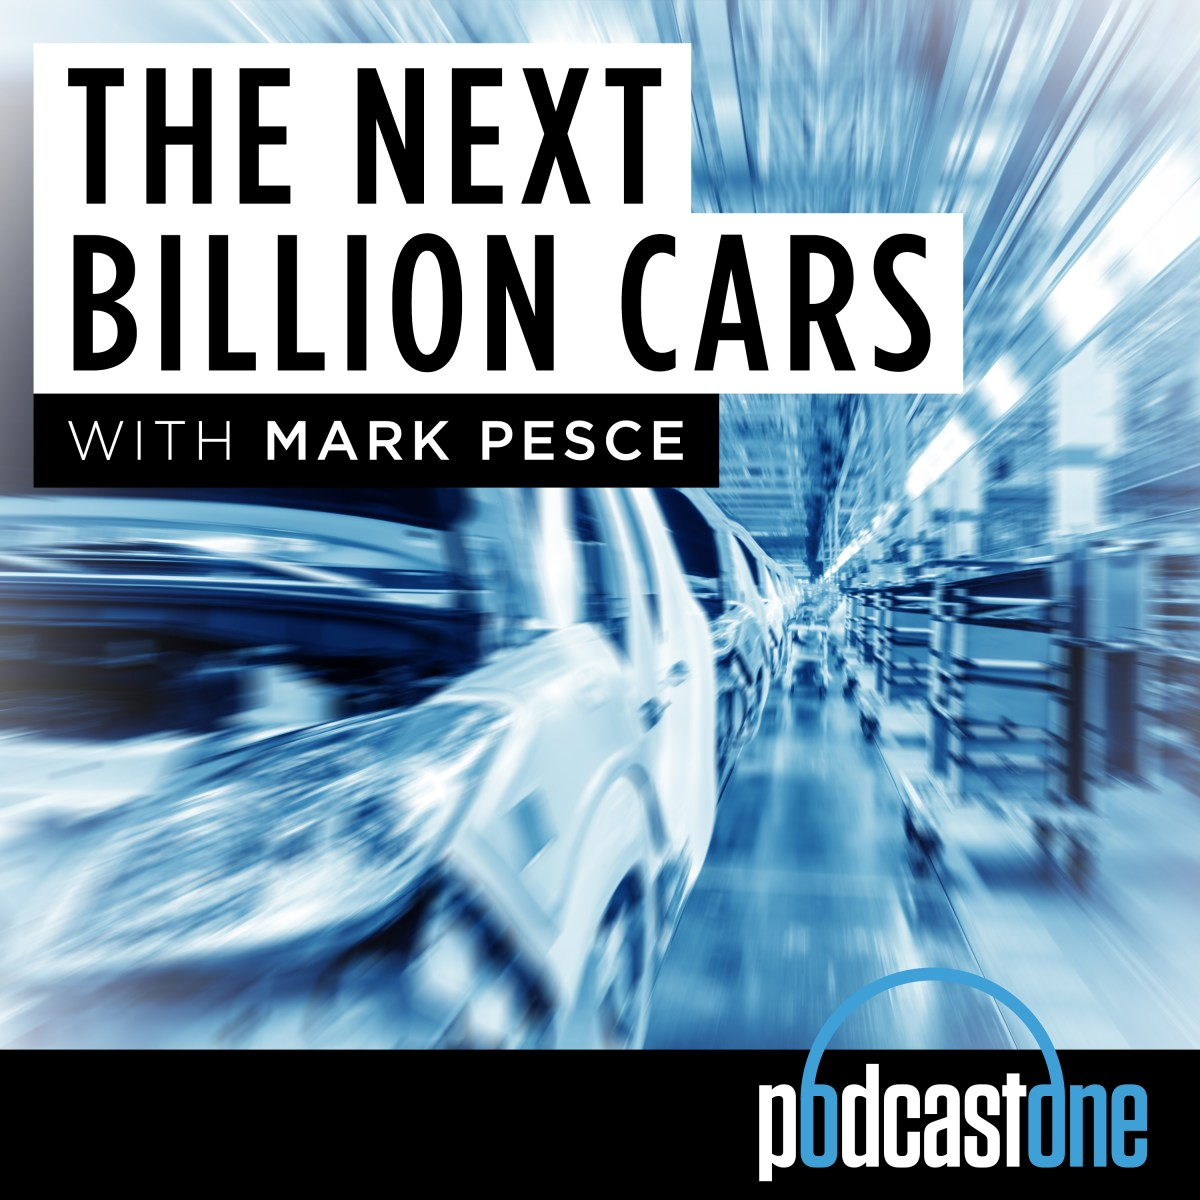 THE NEXT BILLION CARS Episode 1: The Next Billion Problems